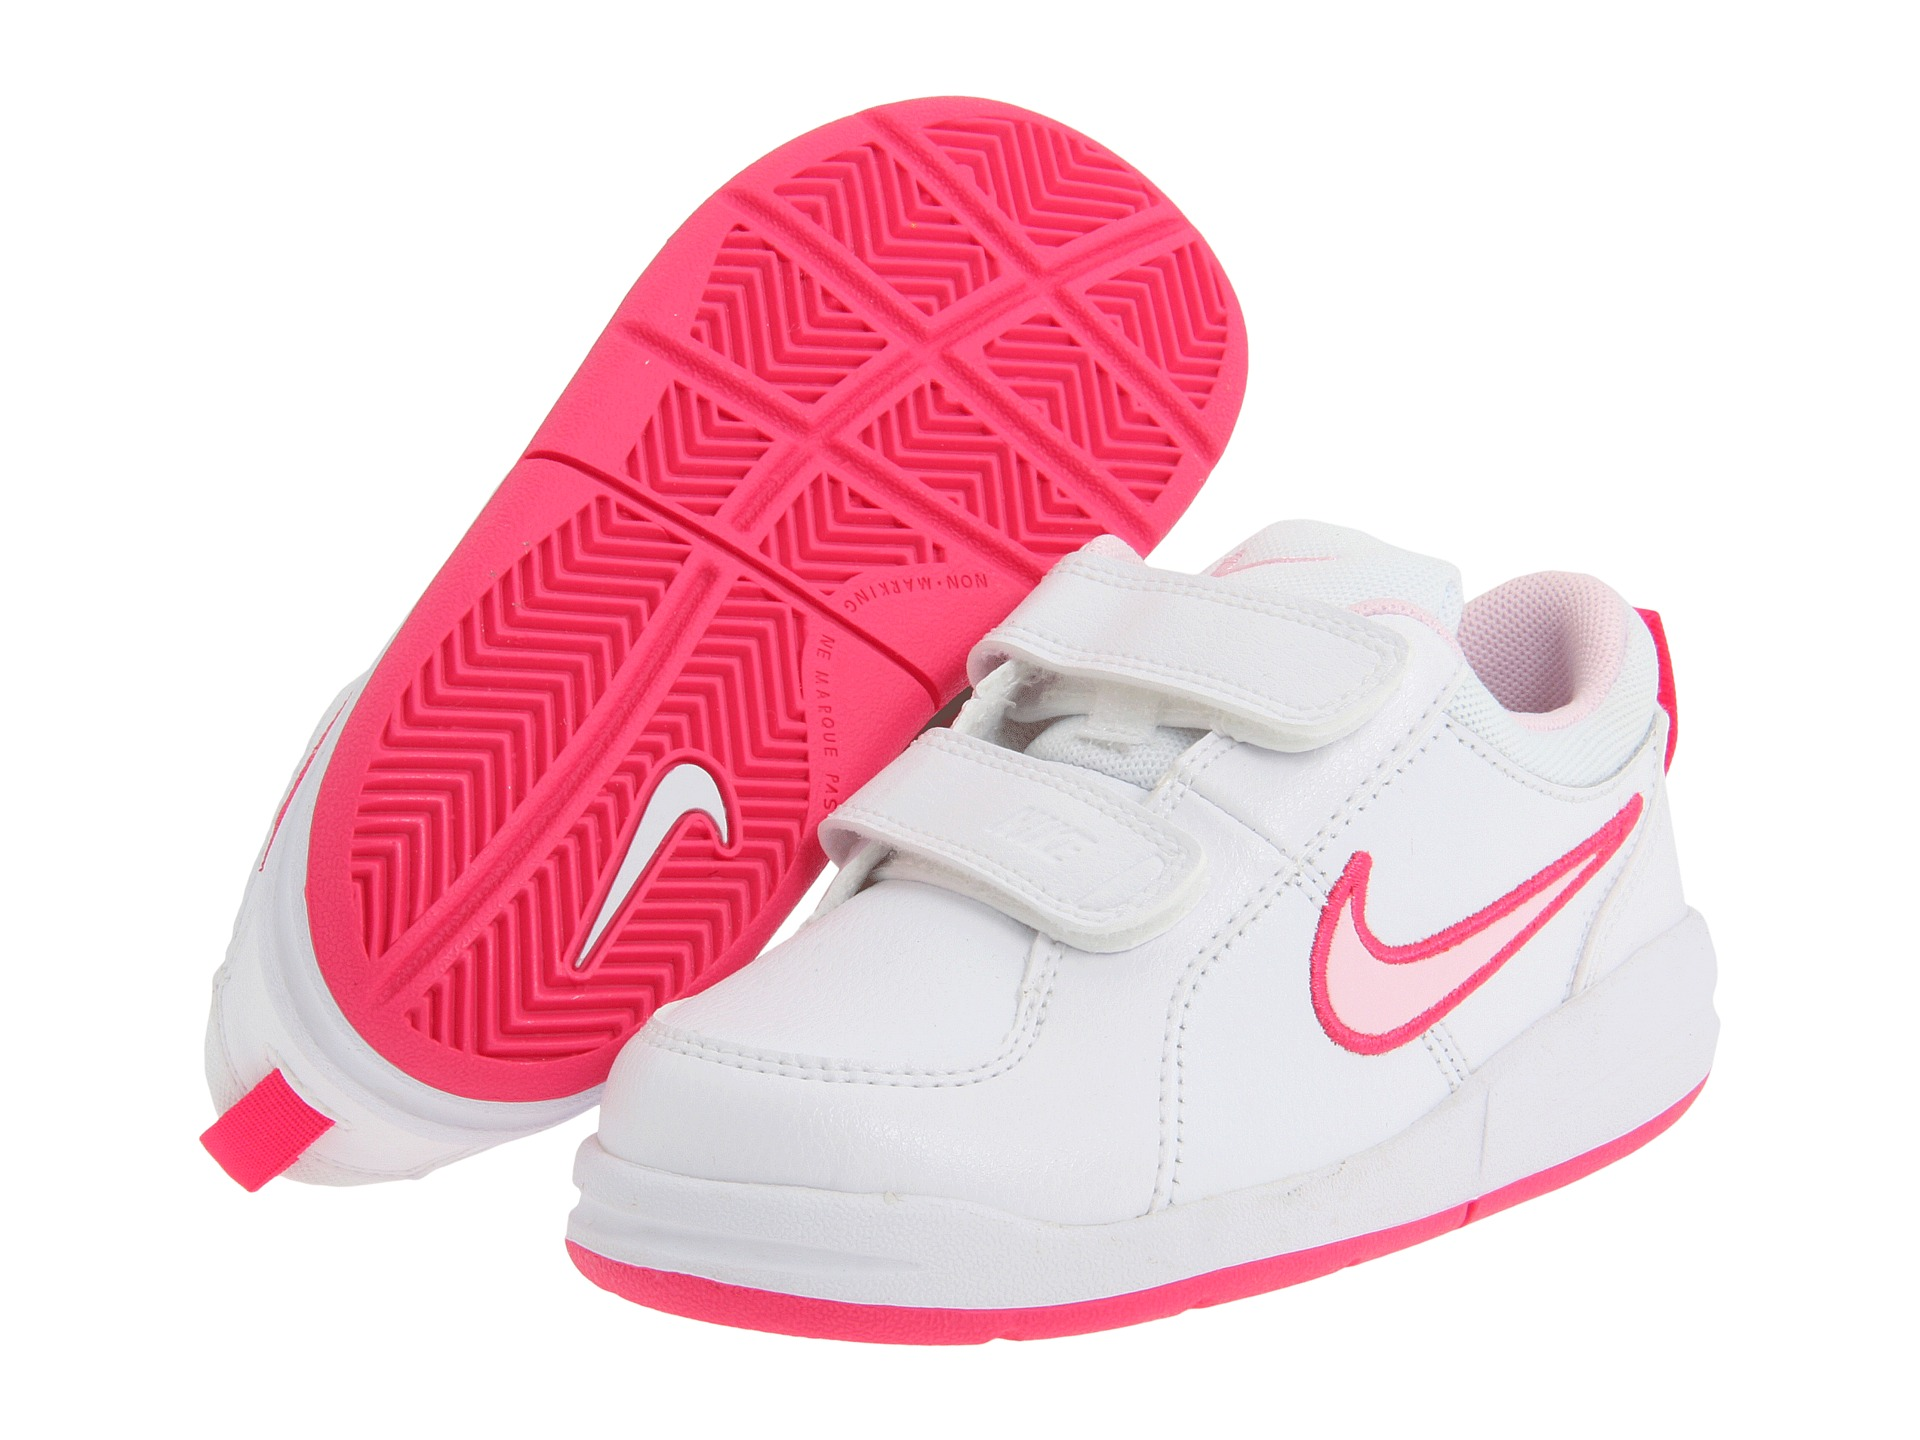 Nike Kids Pico Infant Toddler White Spark Prism Pink